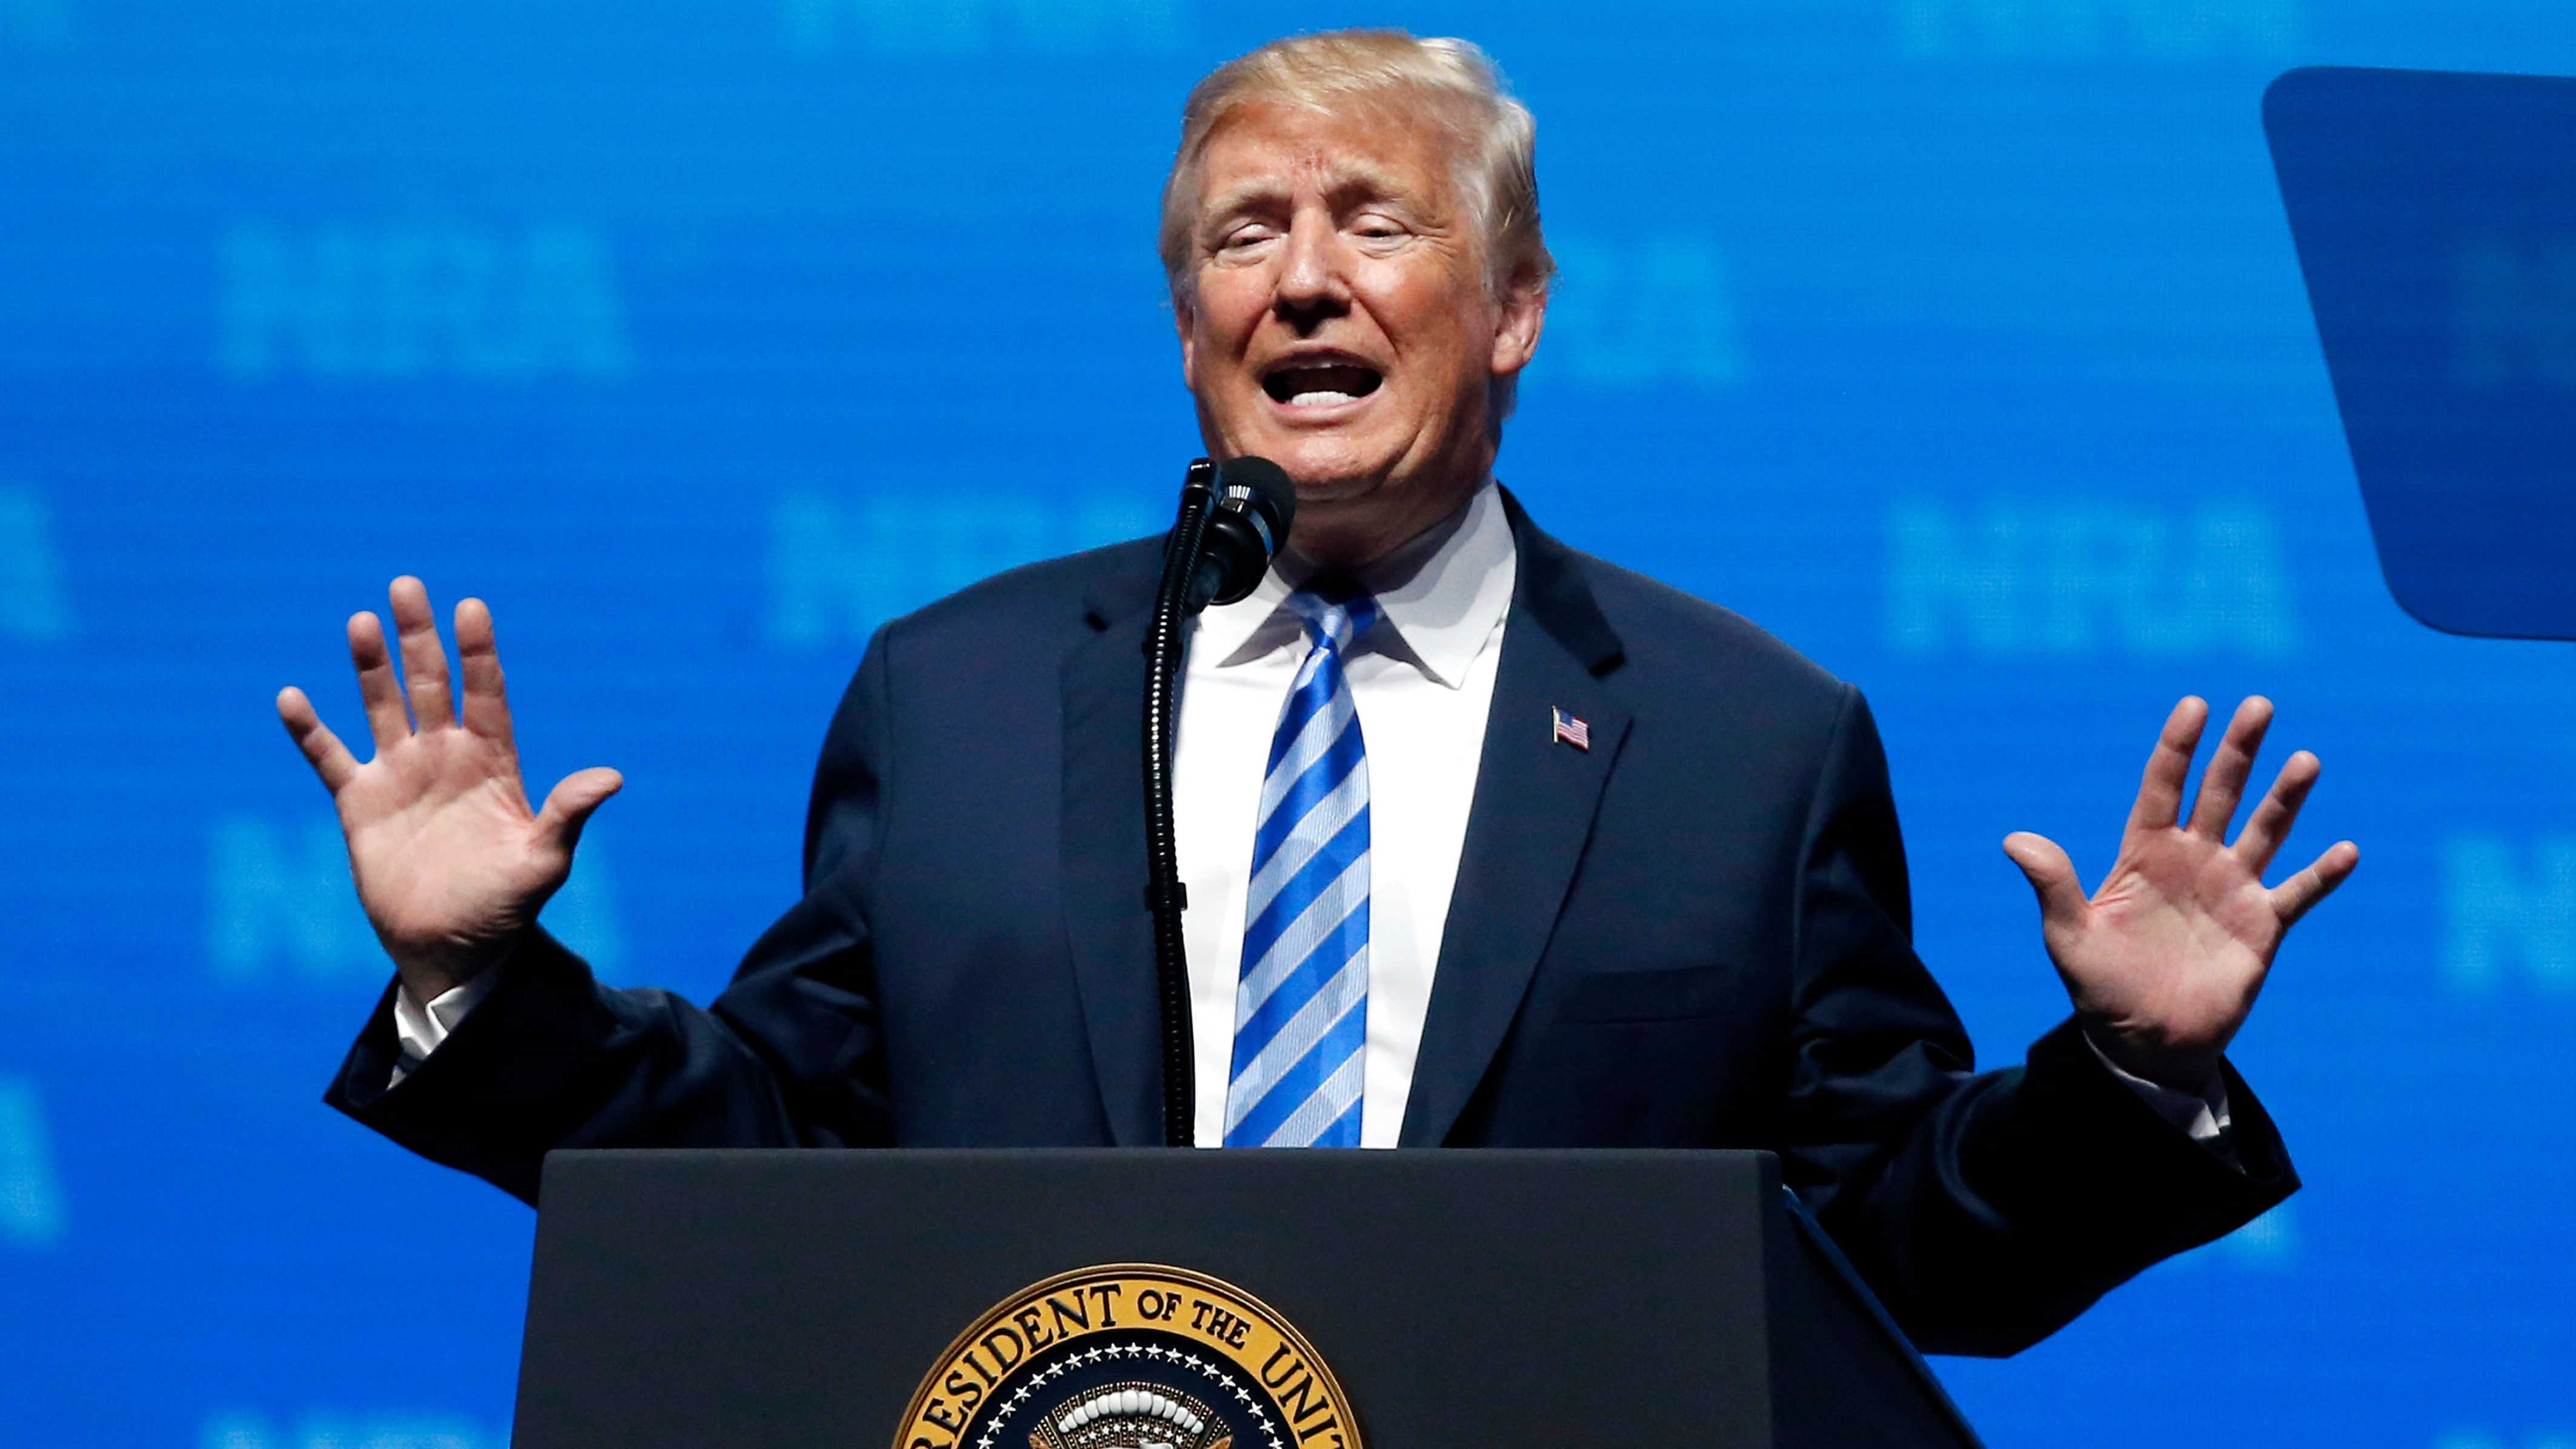 President Donald Trump speaks at the National Rifle Association annual convention in Dallas, Friday, May 4, 2018. (AP Photo/Sue Ogrocki)